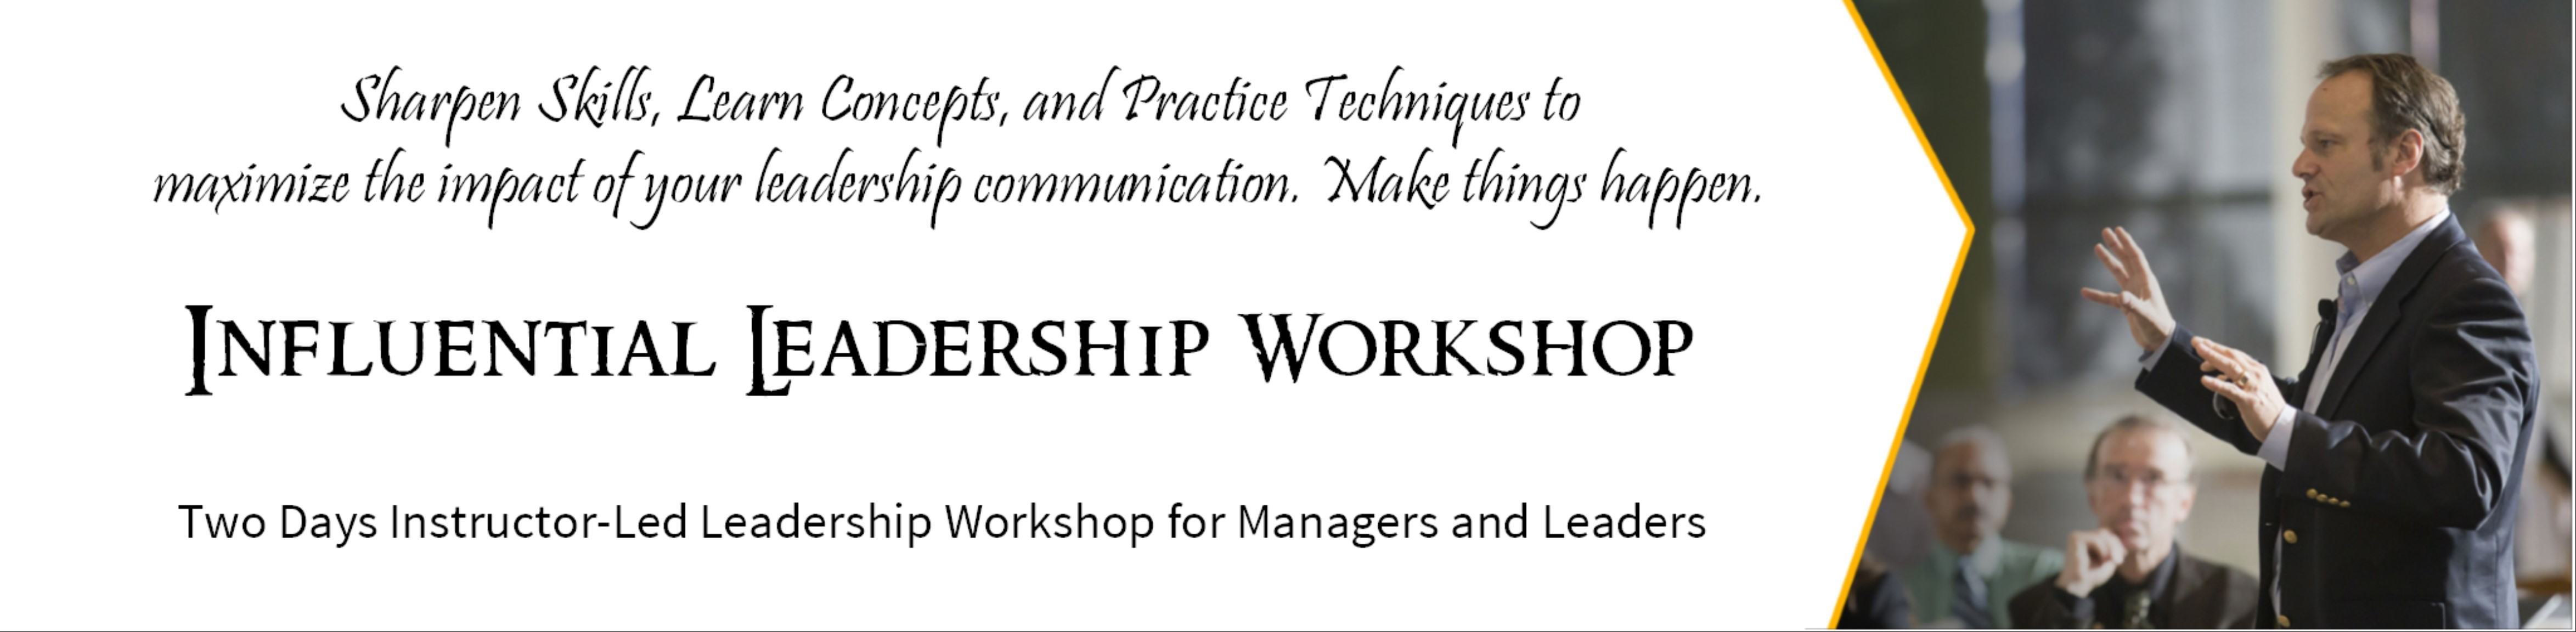 Influential Leadership Workshop